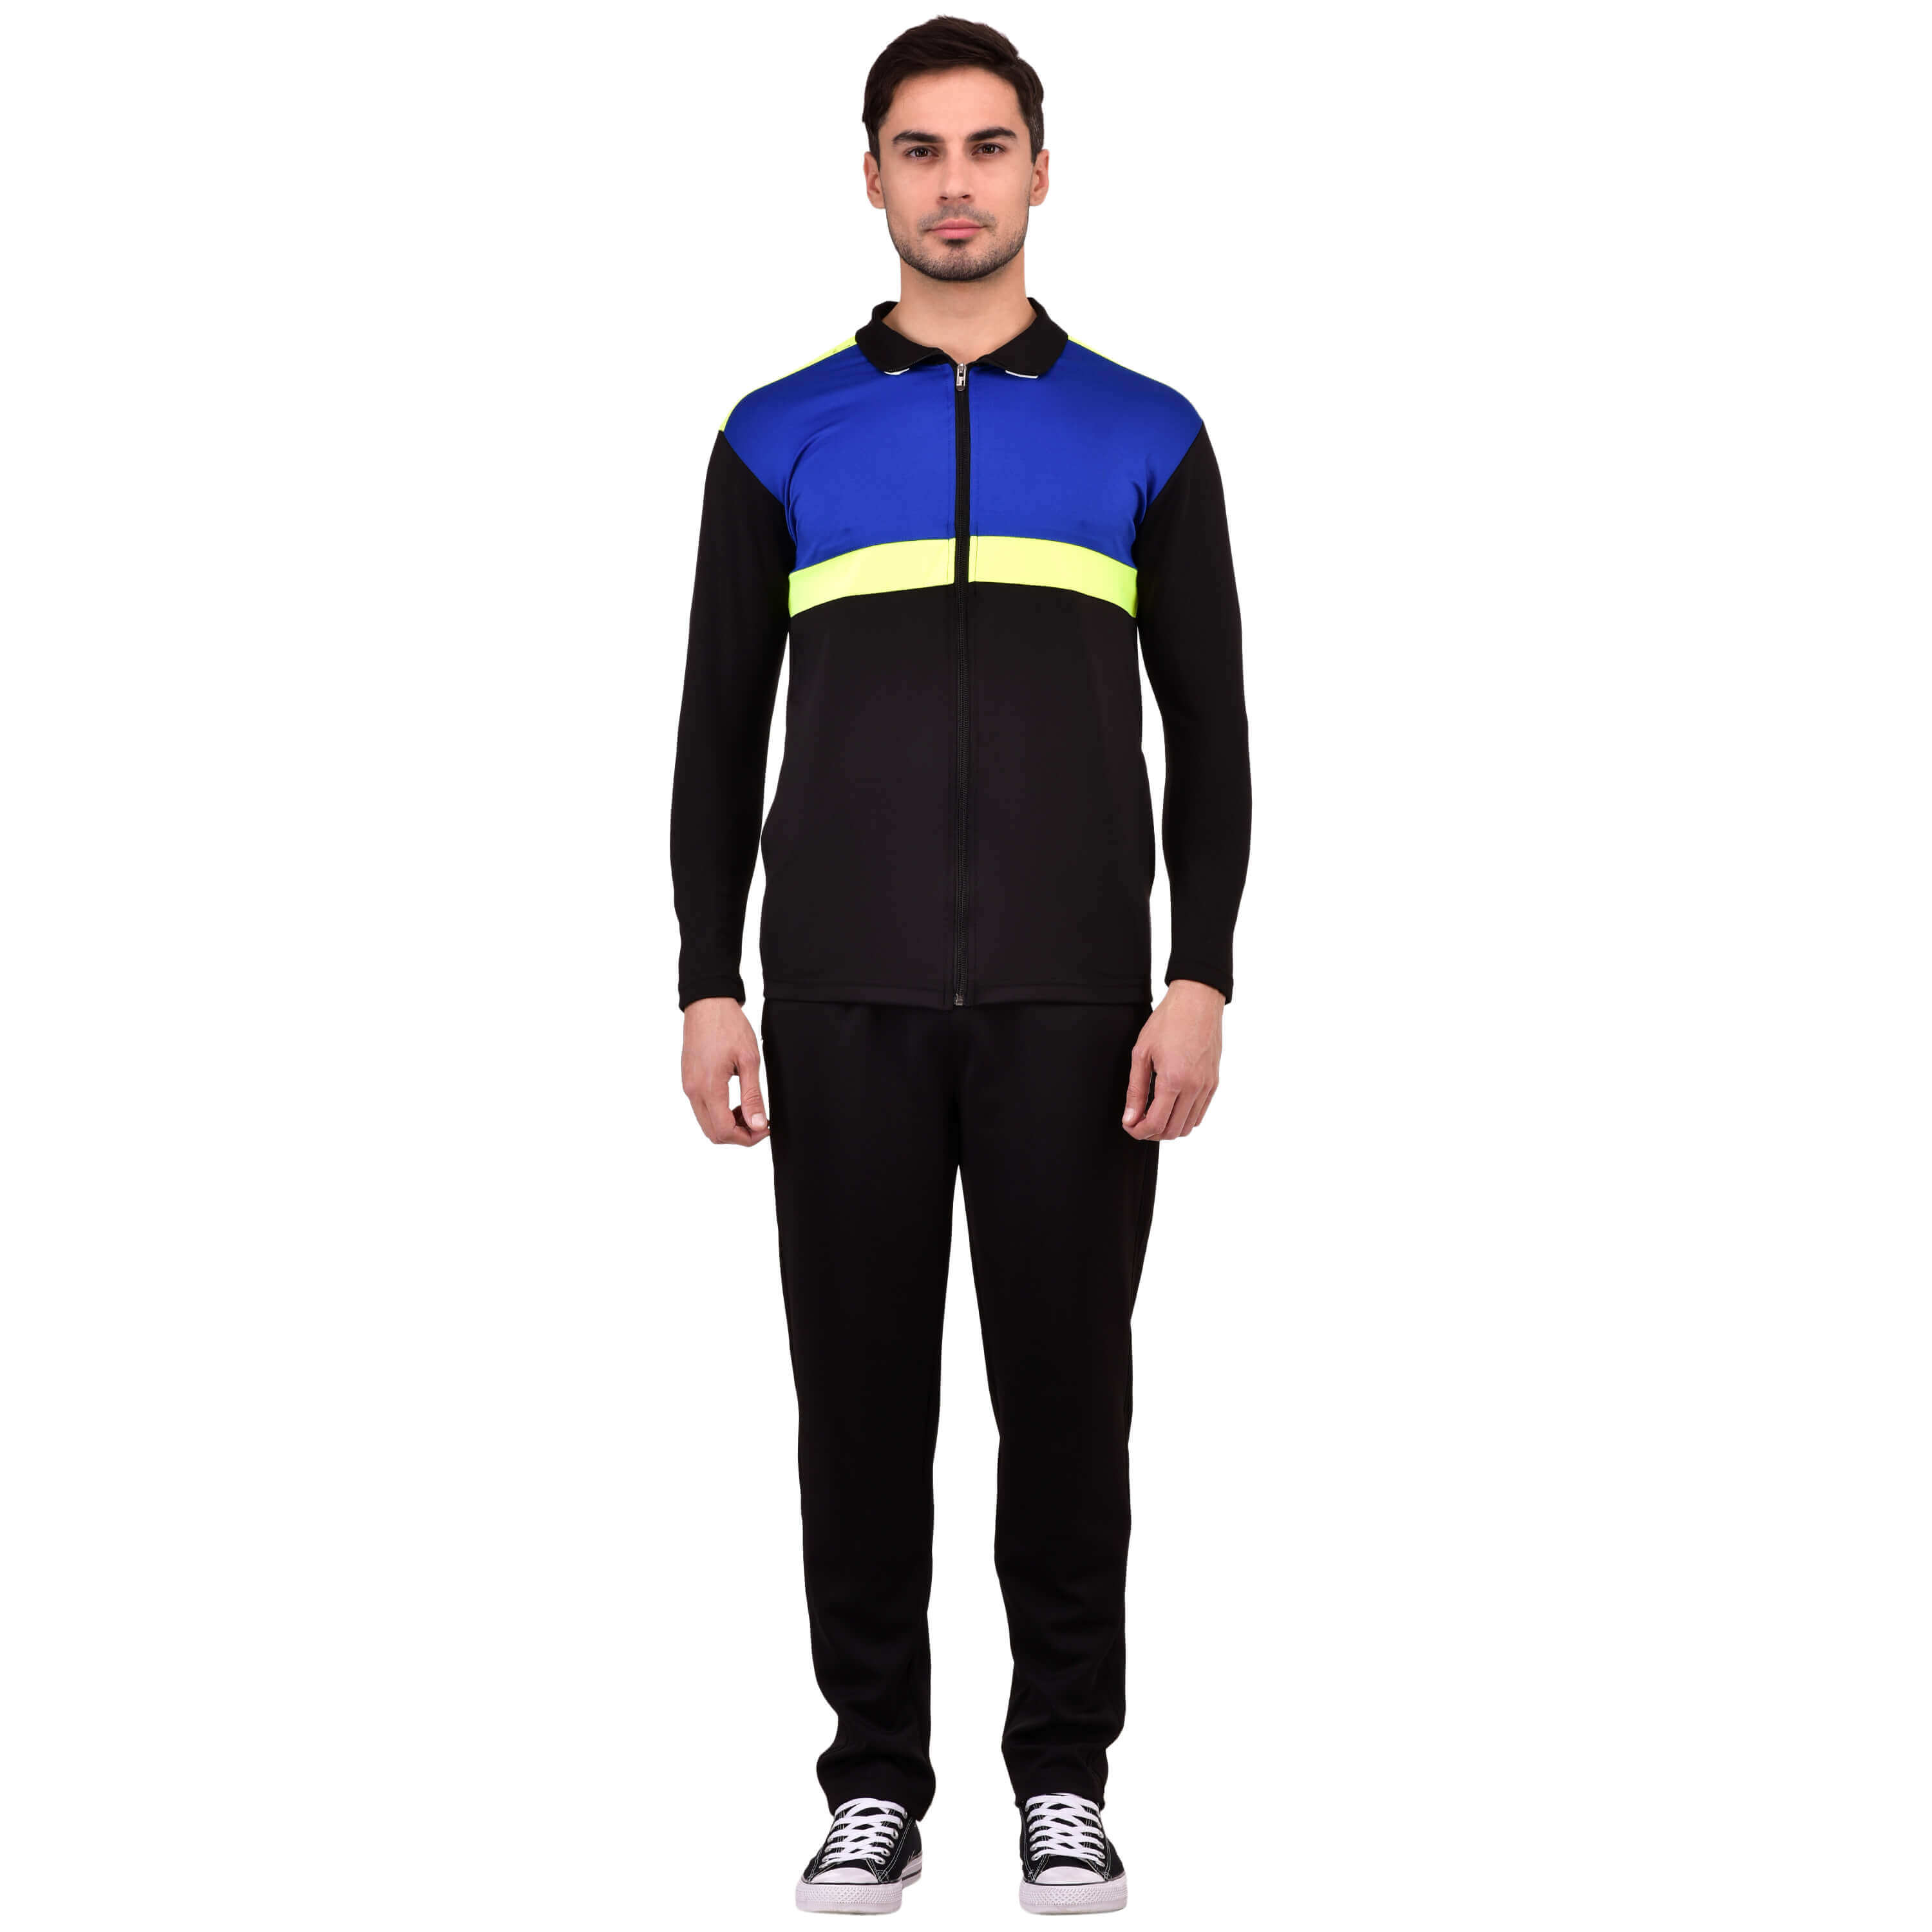 Mens Black Tracksuit Manufacturers in Noida